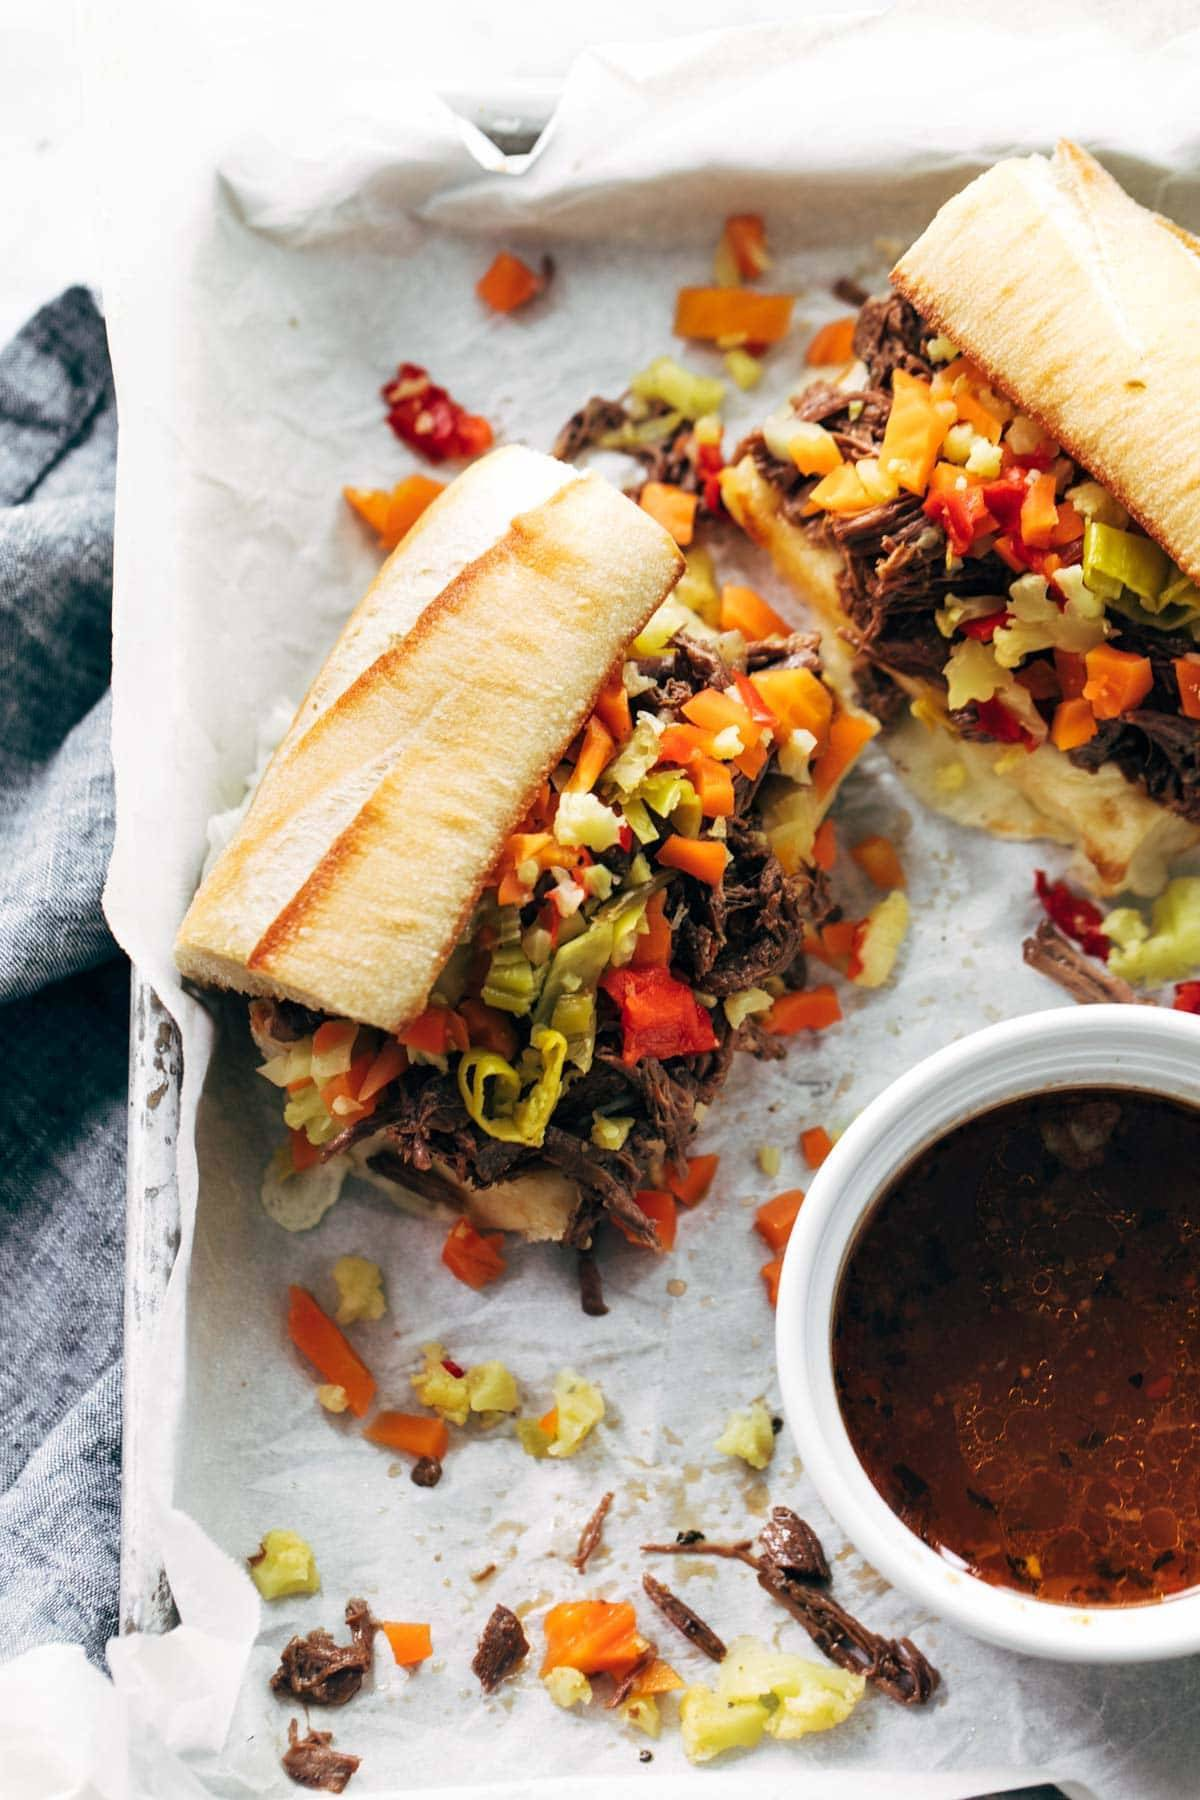 Instant Pot Italian Beef in sandwiches on a tray.